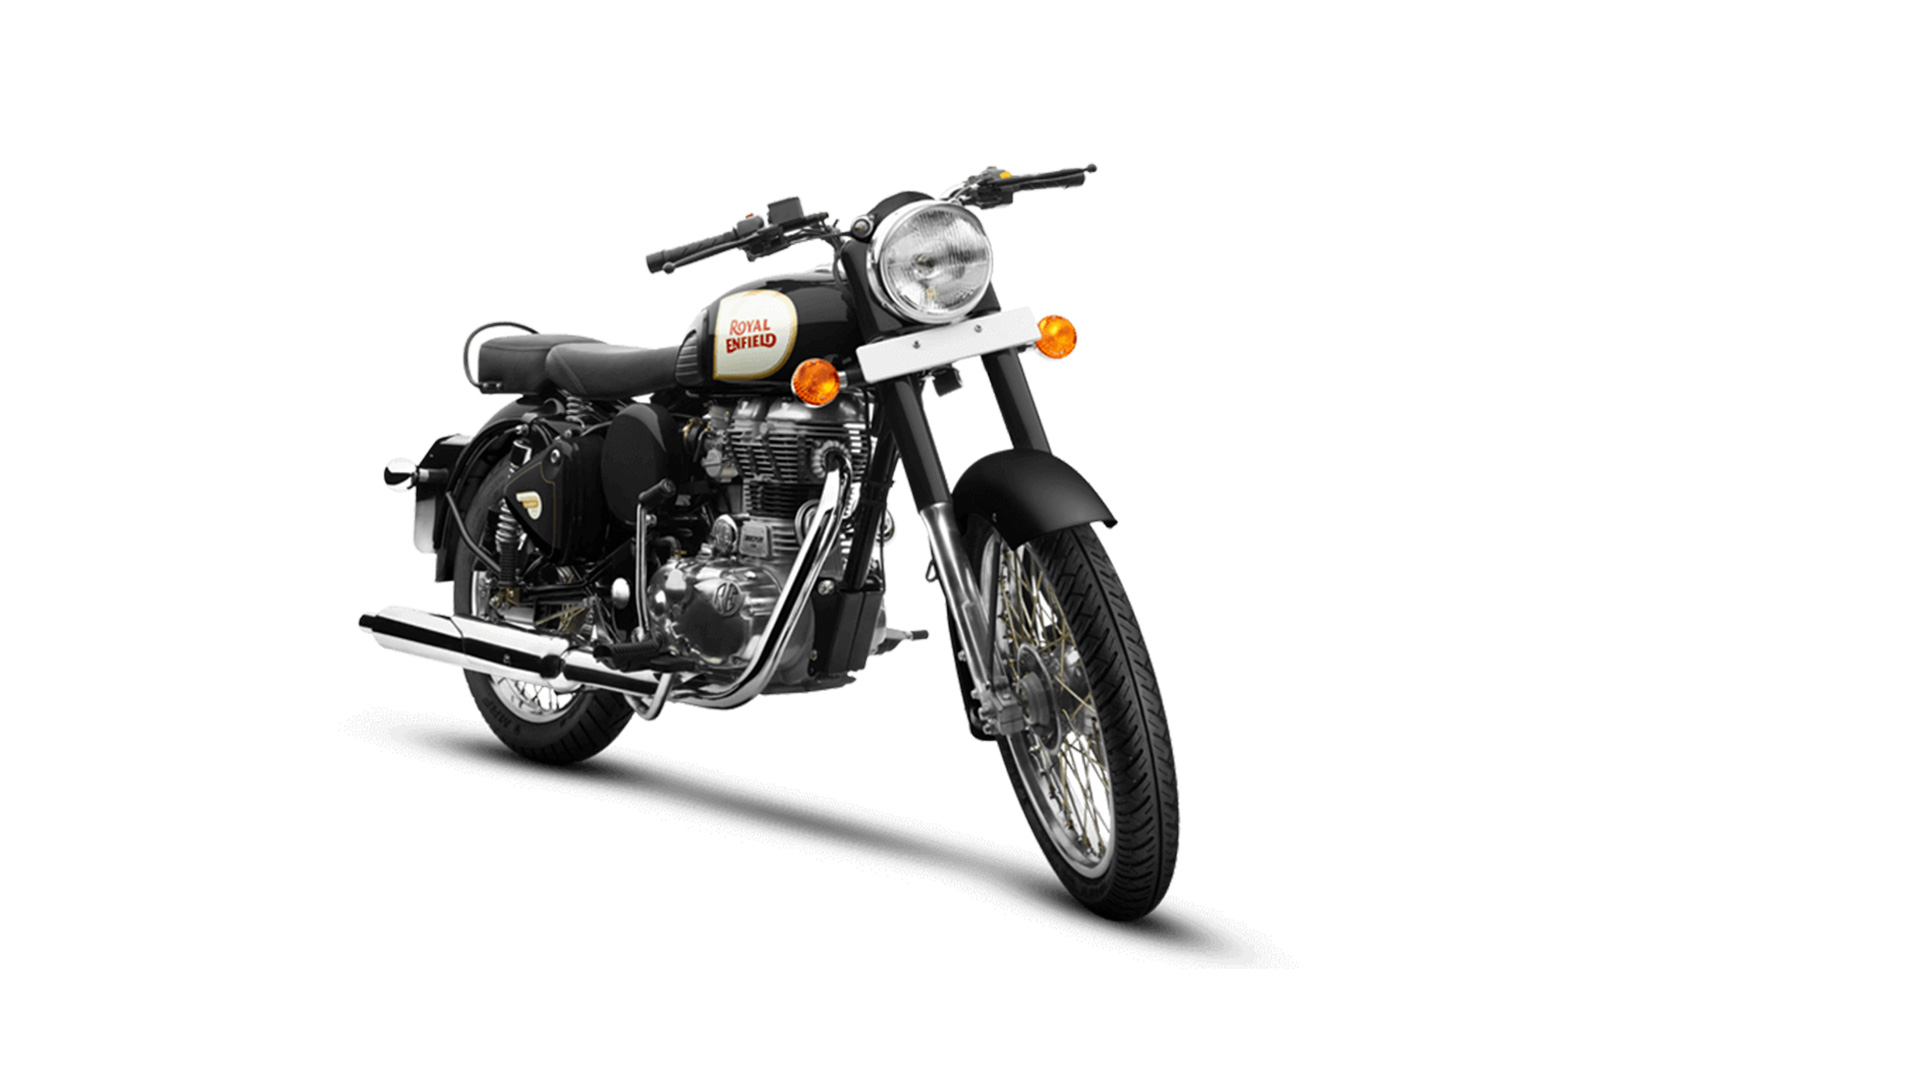 Photo of Royal Enfield Classic 350: The pride from post-war detailing